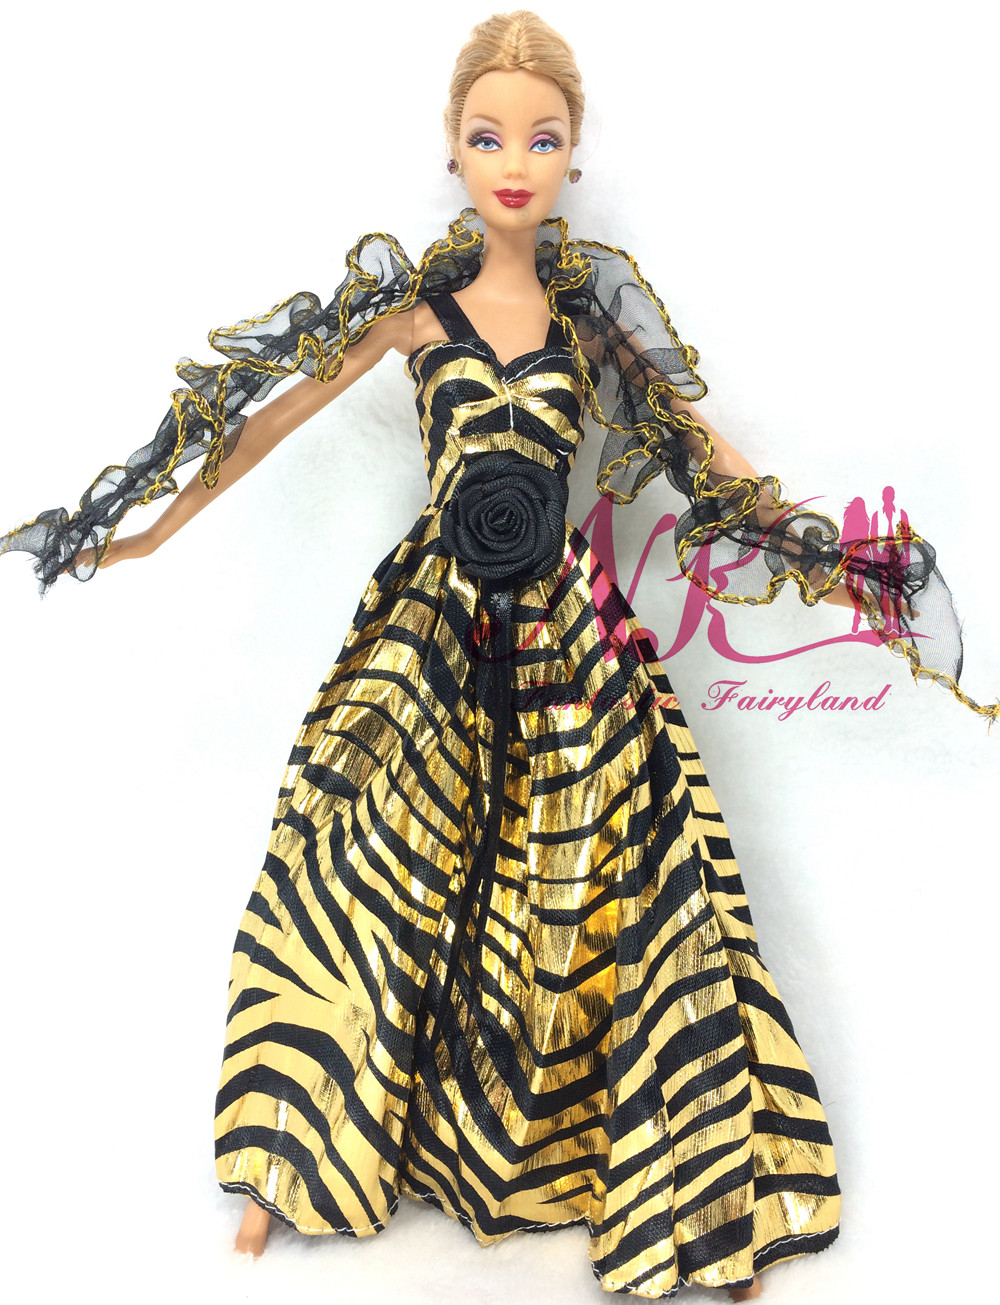 NK Latest Princess Golden Costume Lace Tippet Noble Get together Robe For Barbie Doll Trend Design Outfit Finest Reward For Lady' Doll 029B